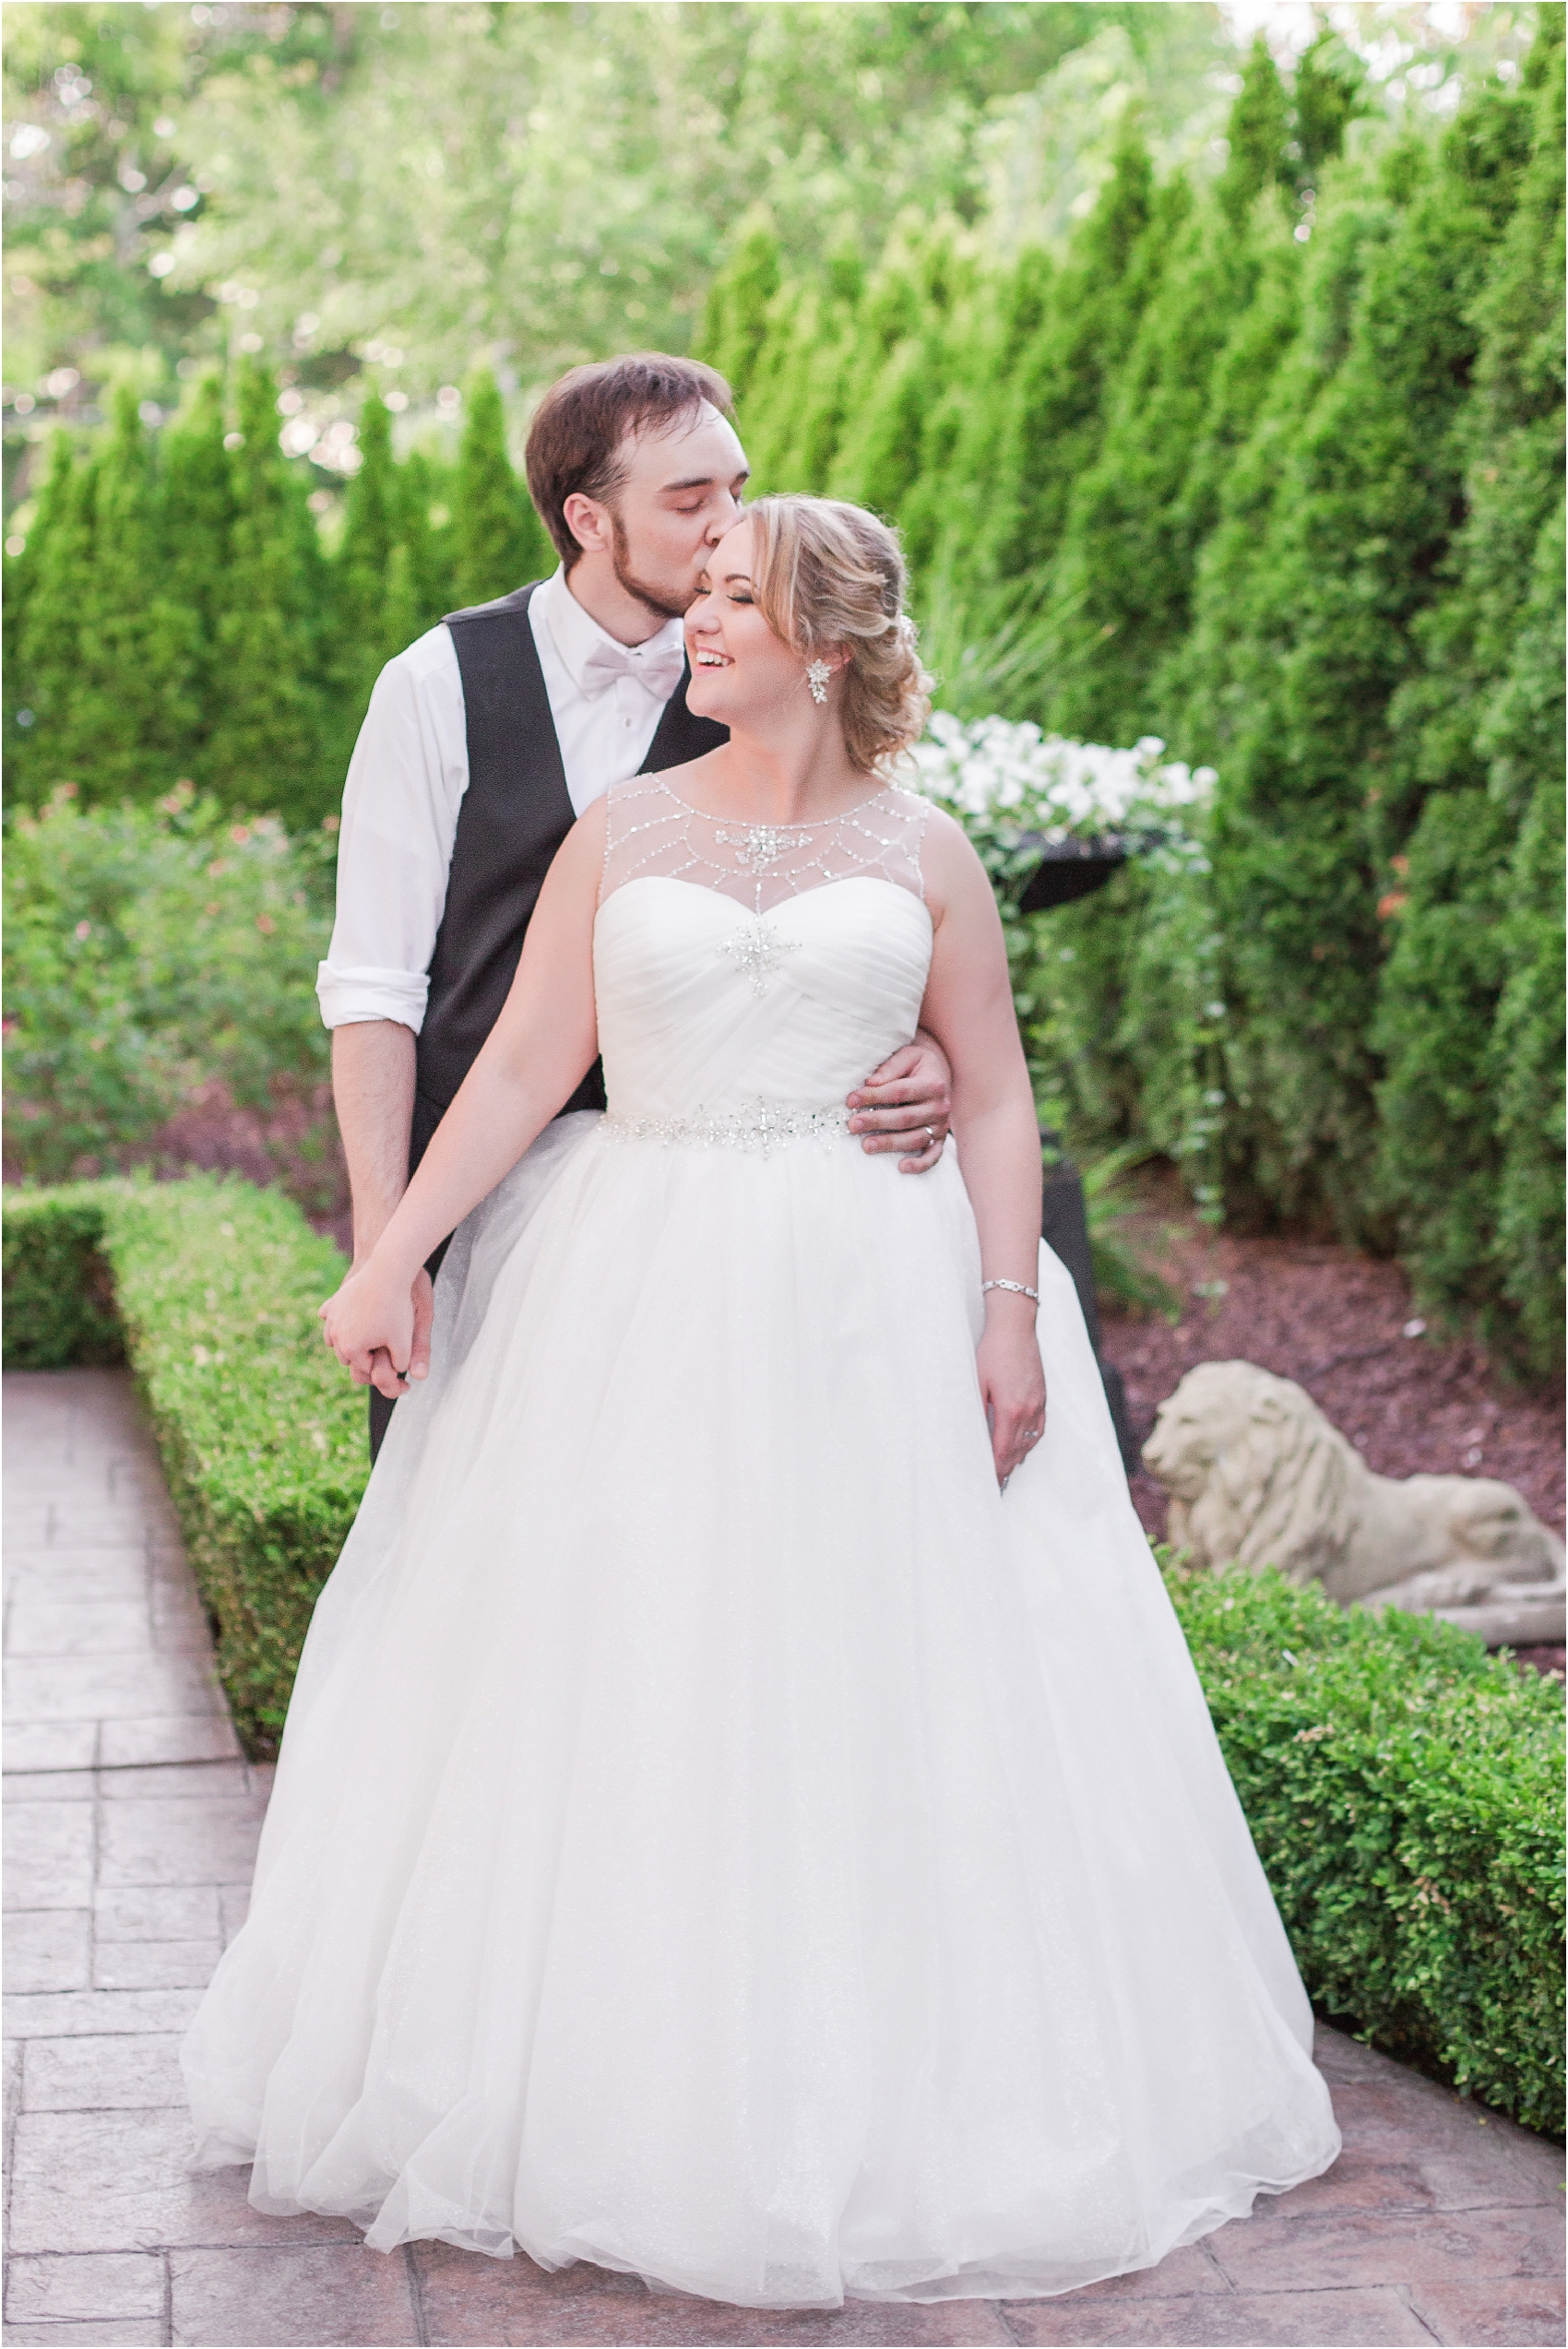 lord-of-the-rings-inspired-wedding-photos-at-crystal-gardens-in-howell-mi-by-courtney-carolyn-photography_0107.jpg